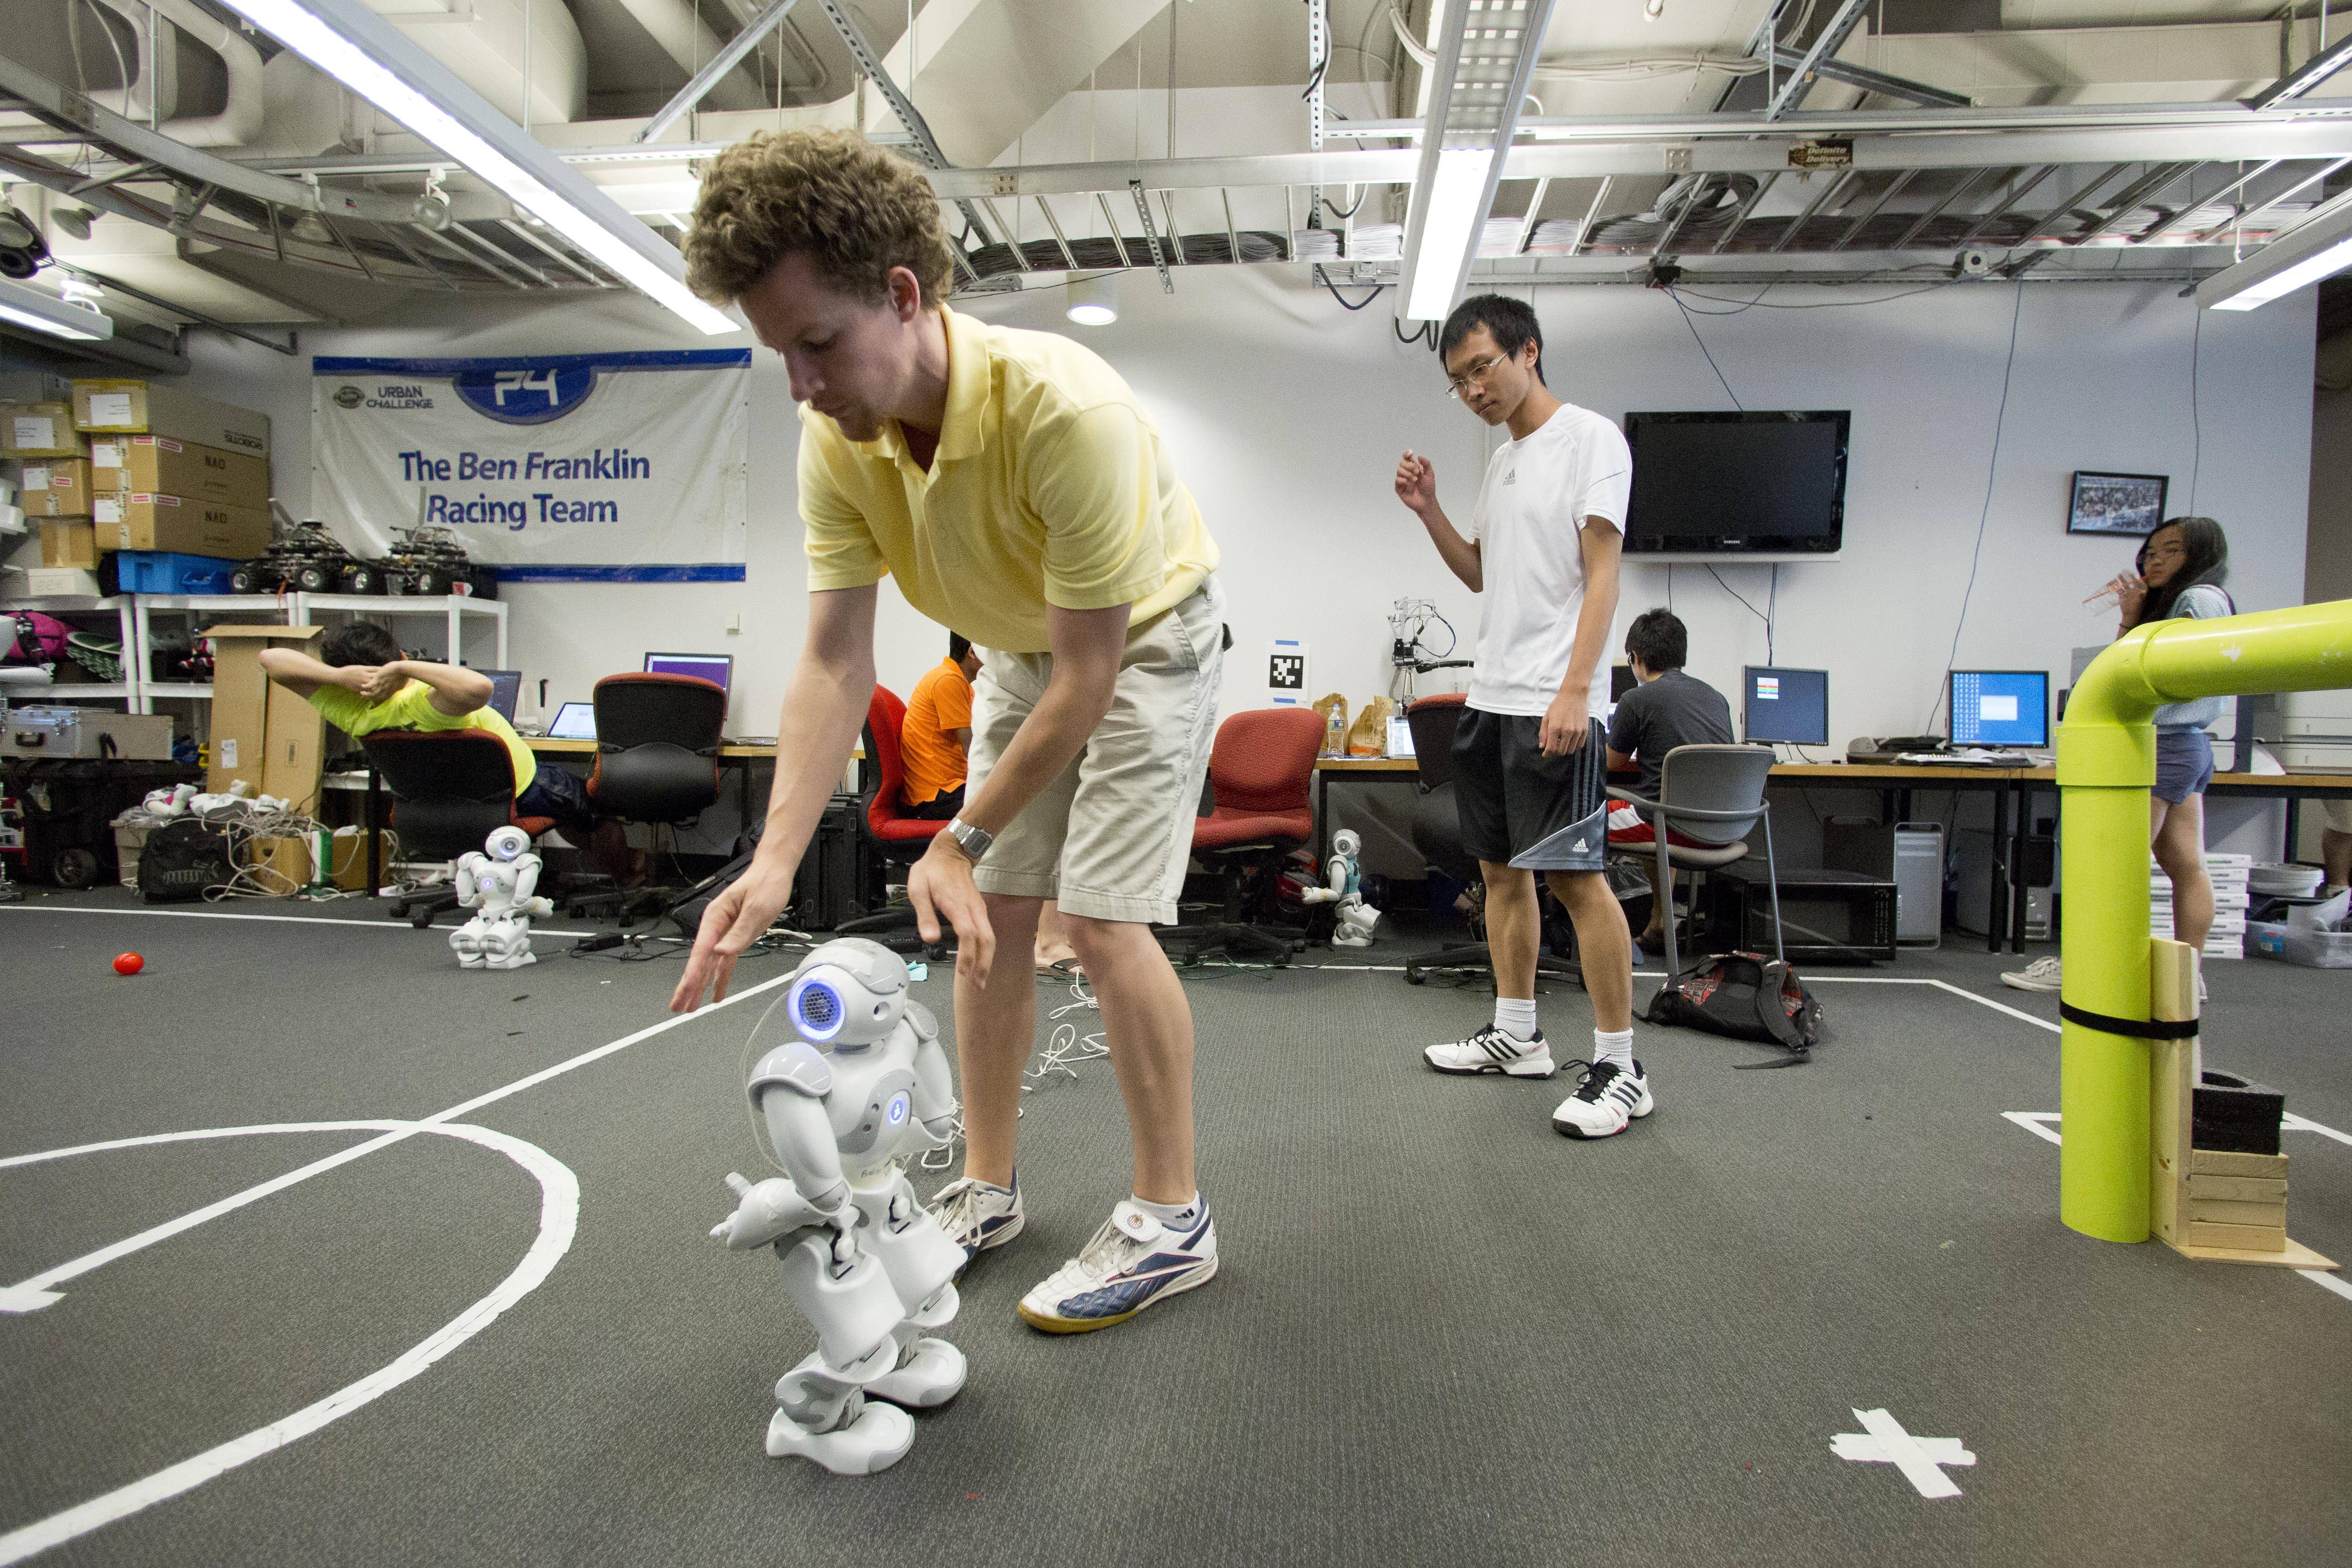 Stephen McGill works with a Nao RoboCup entry. The international robot soccer tournament called RoboCup takes place in Brazil right after the World Cup. The ultimate goal of the yearly event is bold: To create a robot team that can defeat the human World Cup winners by 2050.